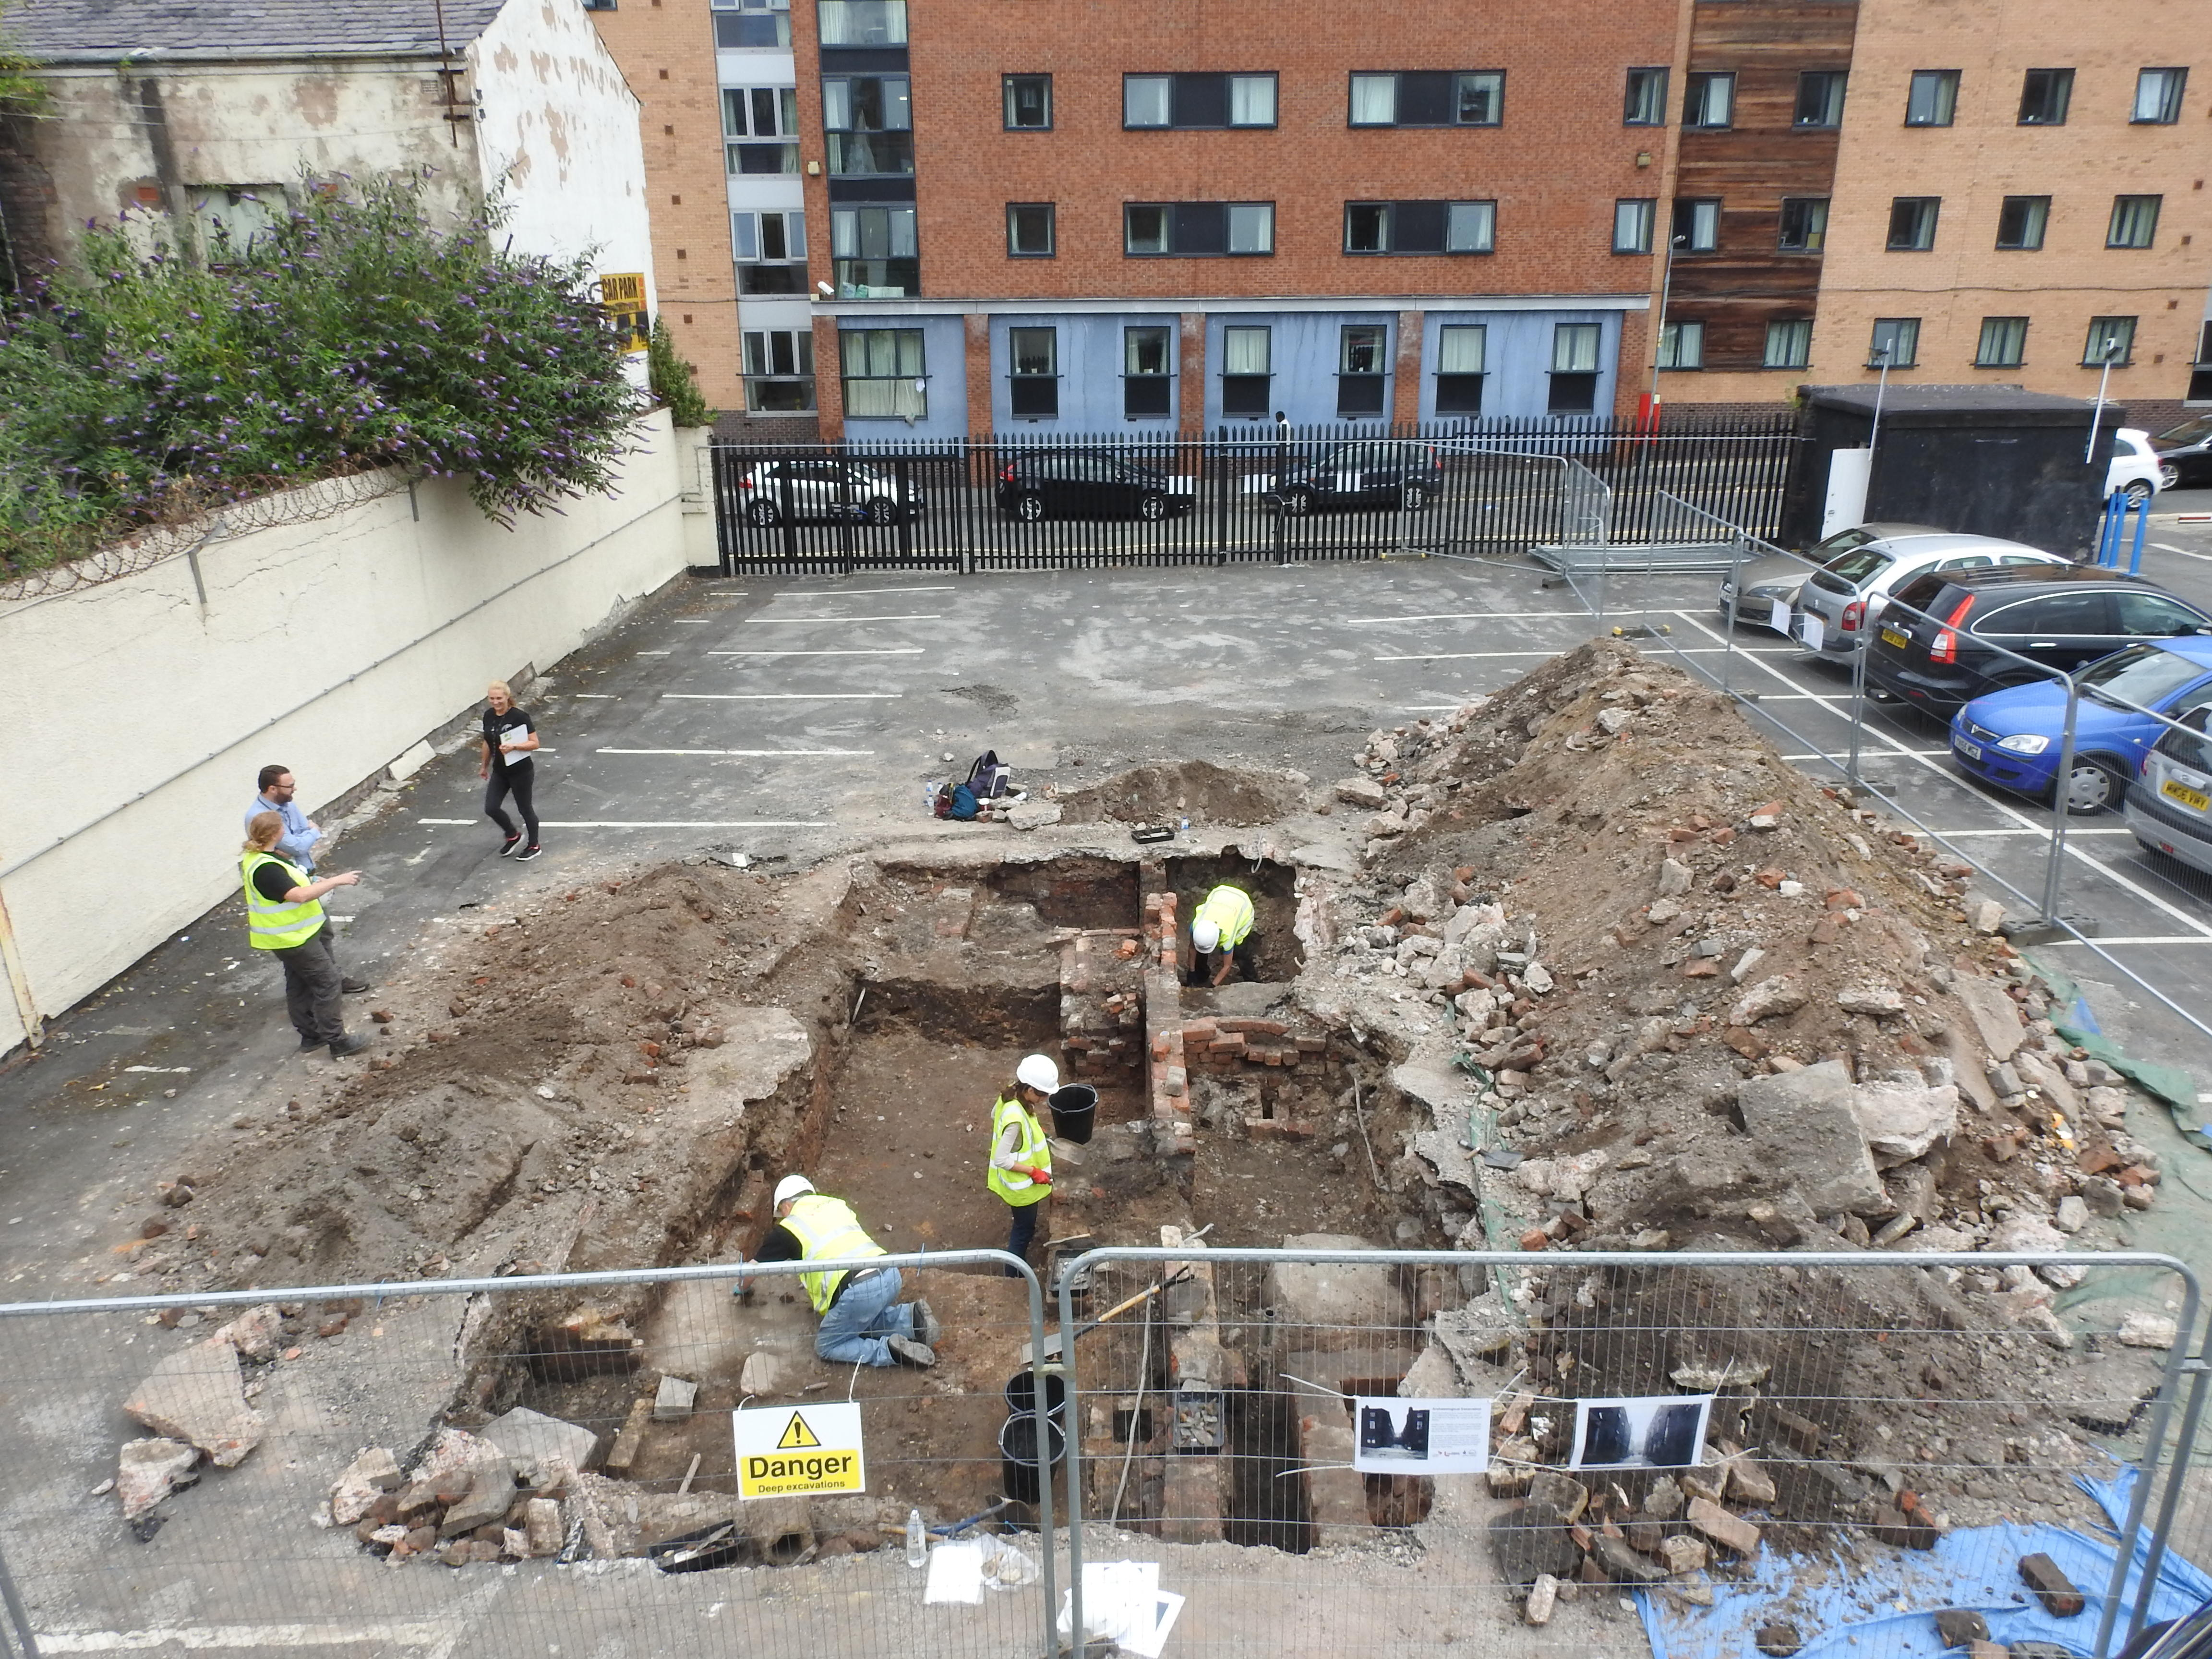 The excavation site at LSTM's Oakes Street car park in 2018